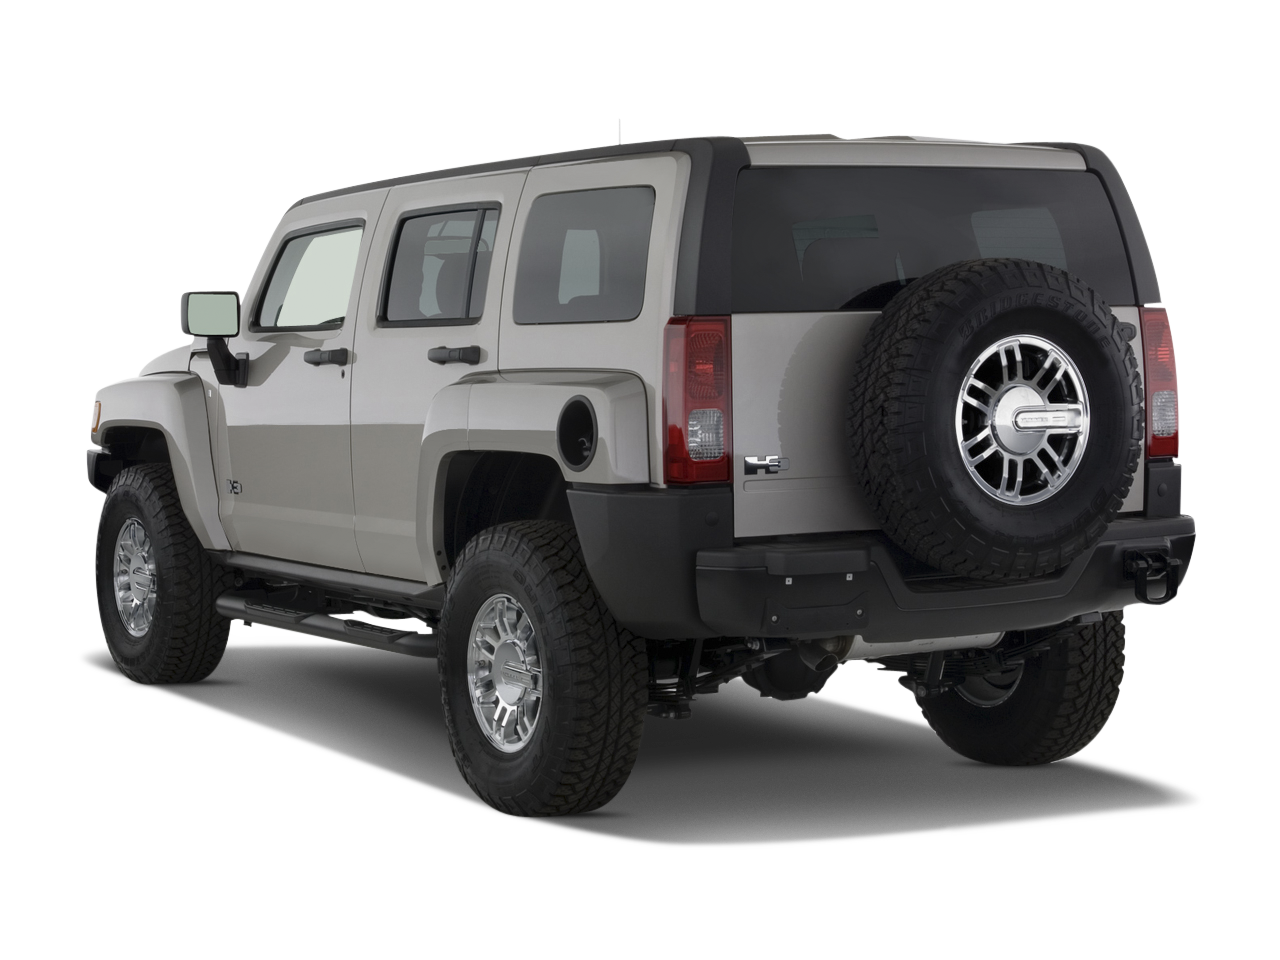 Off road trip hummer. Wheel clipart tire jeep